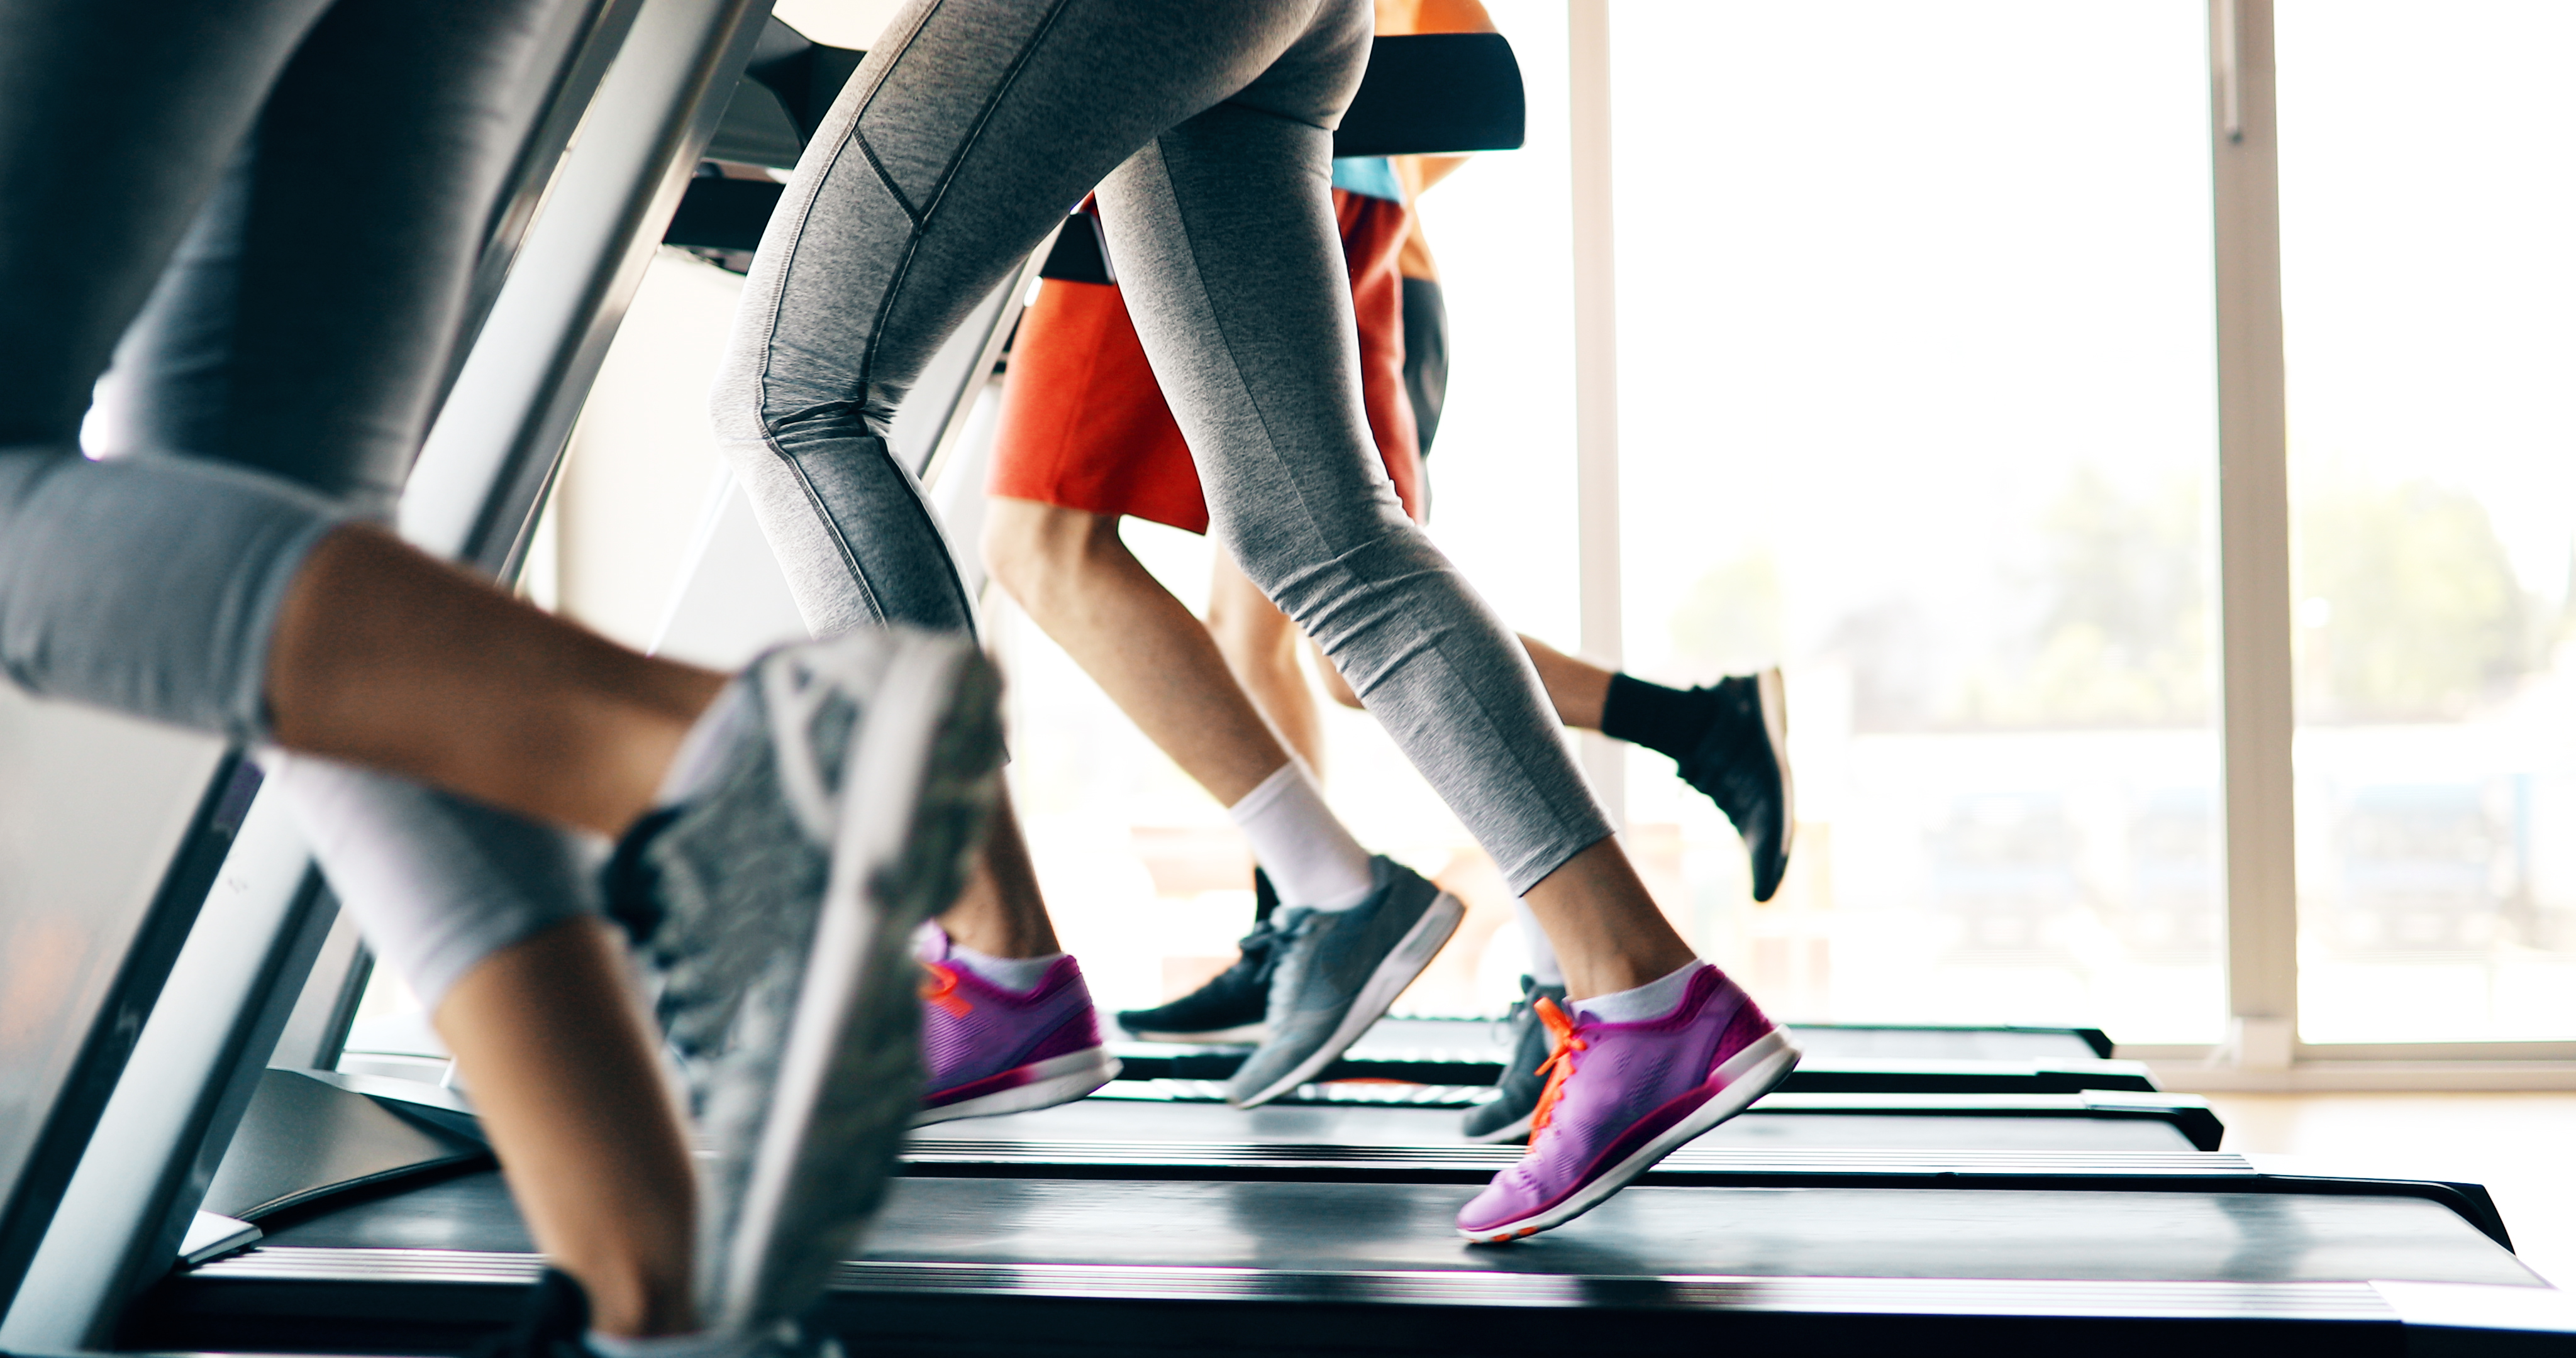 Gyms Fitness Centres To Open Next Week In Fraser Health Region News 1130